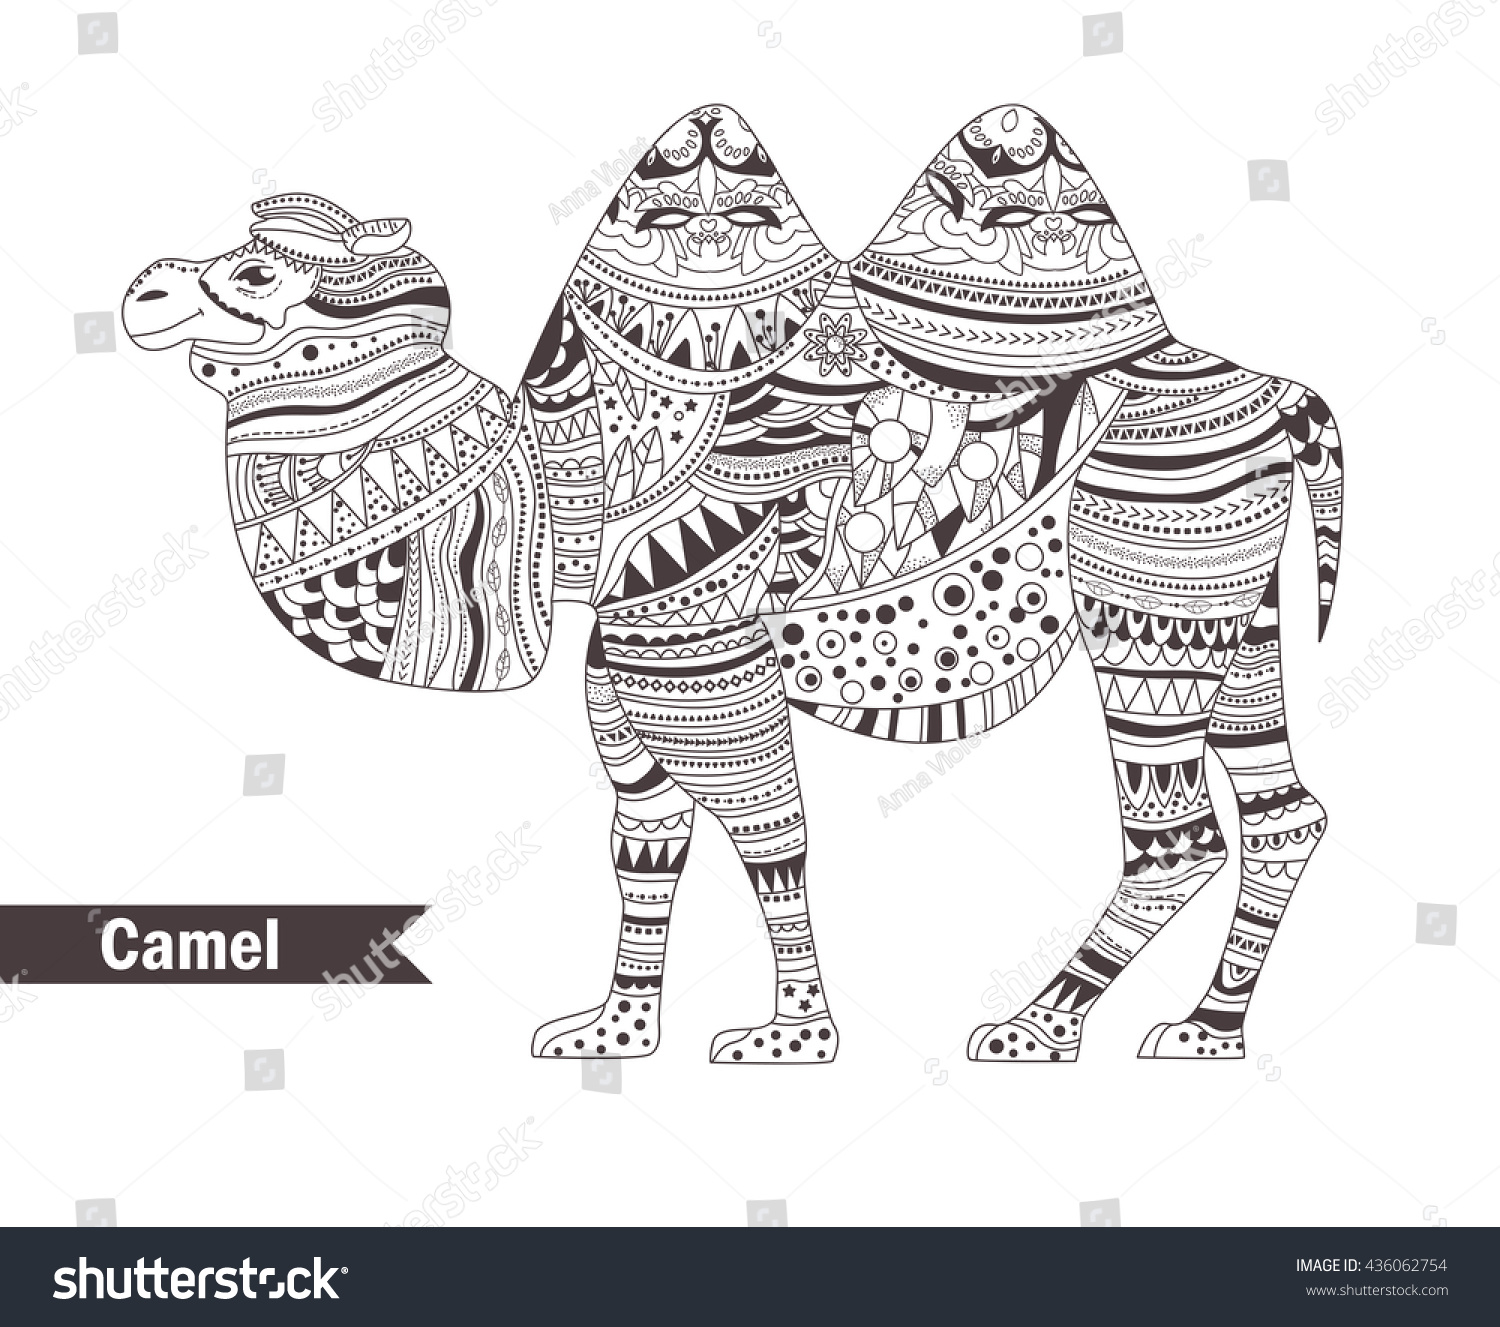 Camel Zentangle Style Coloring Book Adult Stock Vector 436062754